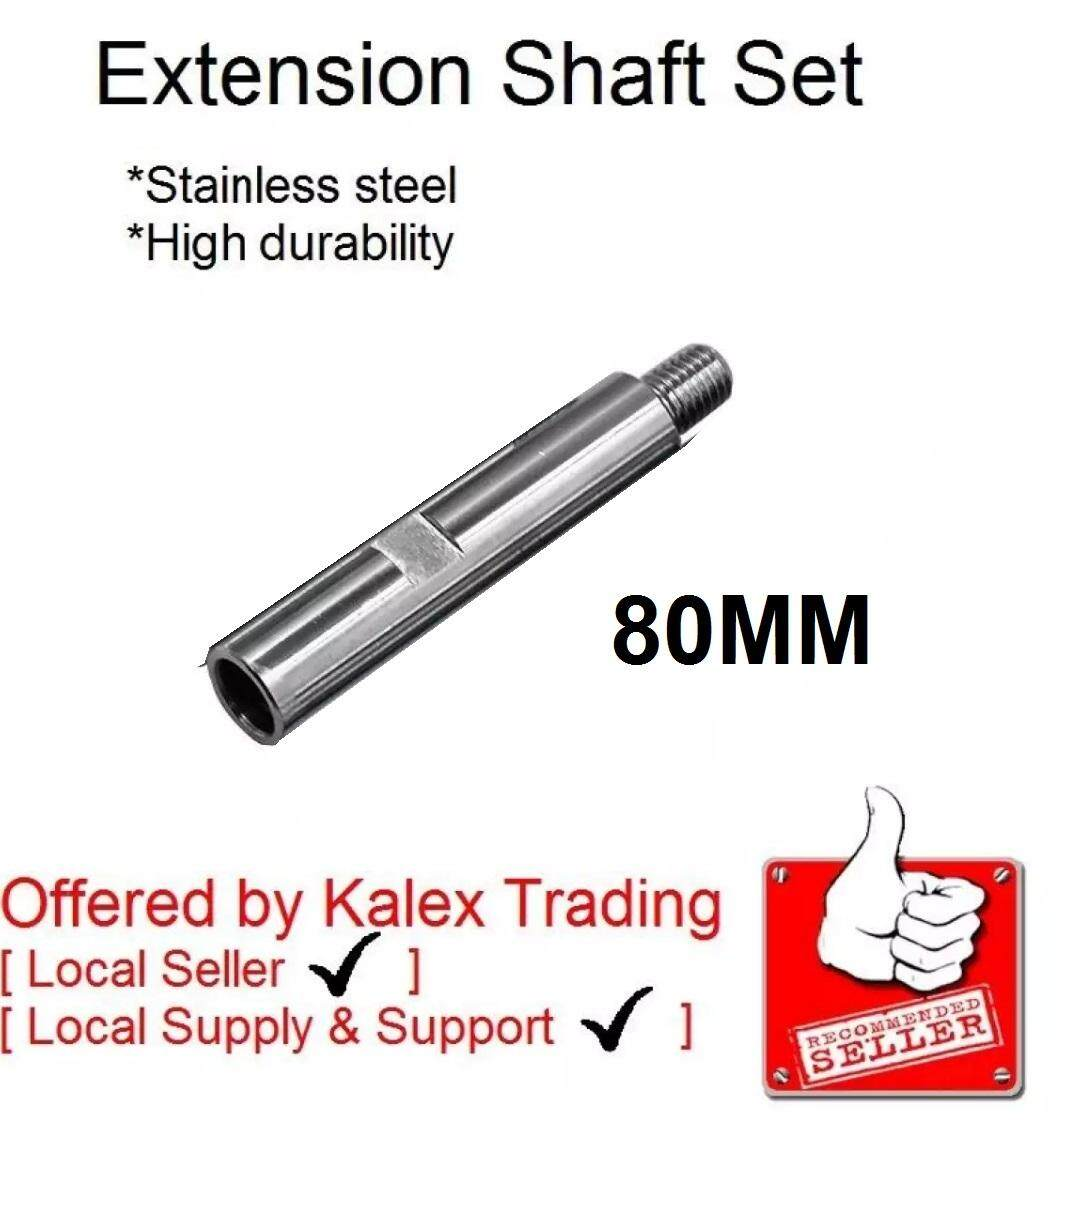 Extension Shaft Medium 80MM long for RO Rotary Polisher M14 thread pattern use